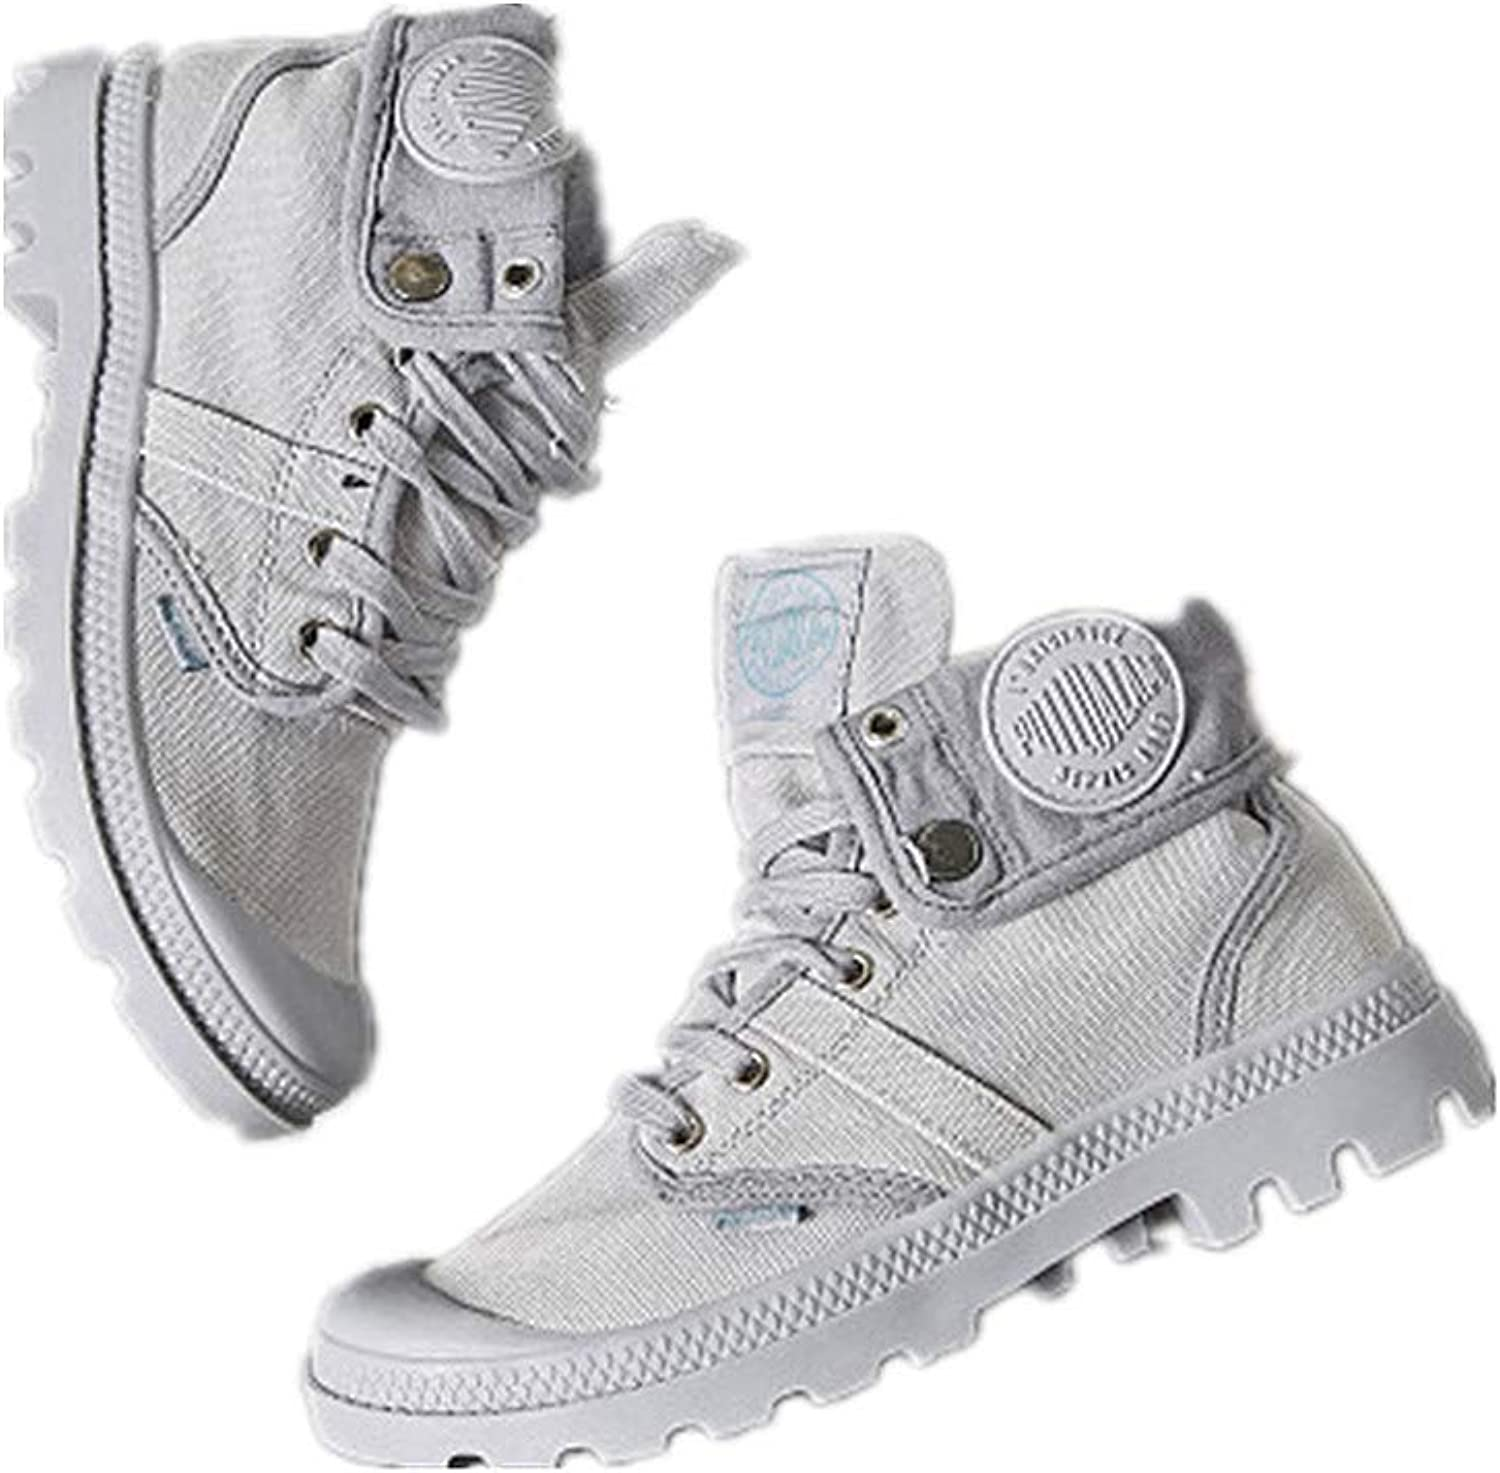 Quality.A Women's high-top Canvas shoes Sneakers Running shoes Walking shoes